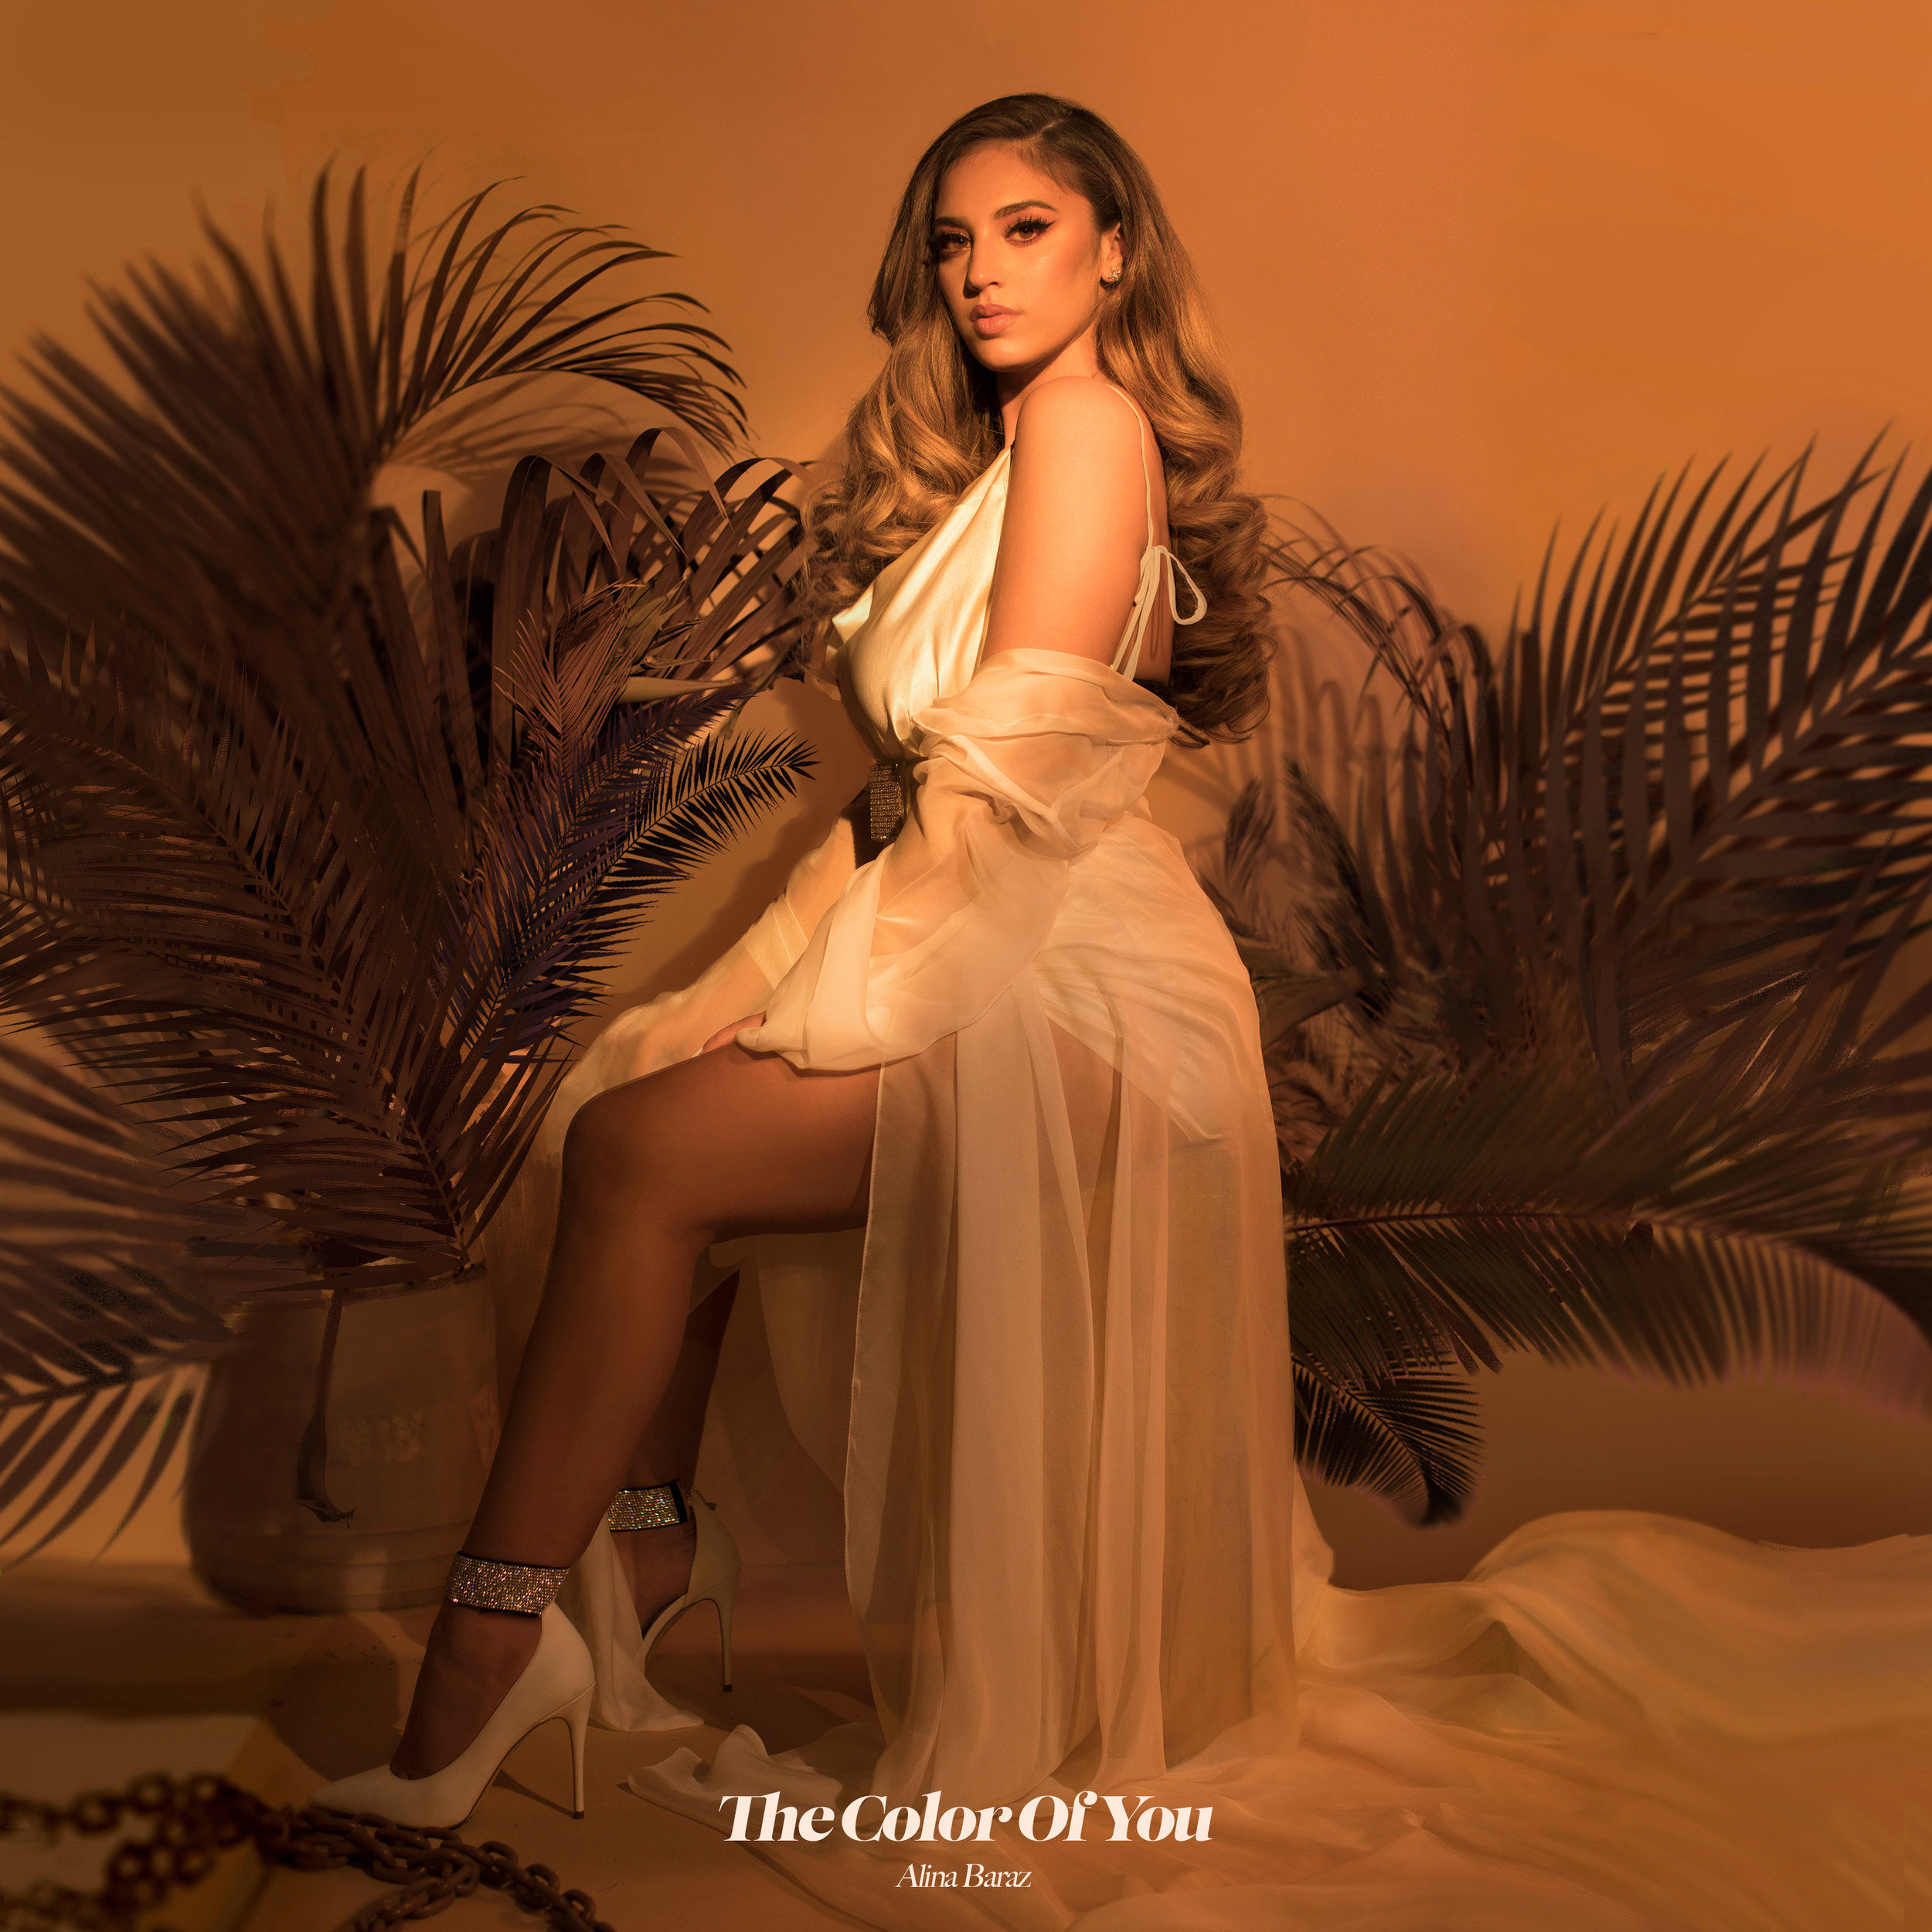 Alina Baraz 'The Color of You'